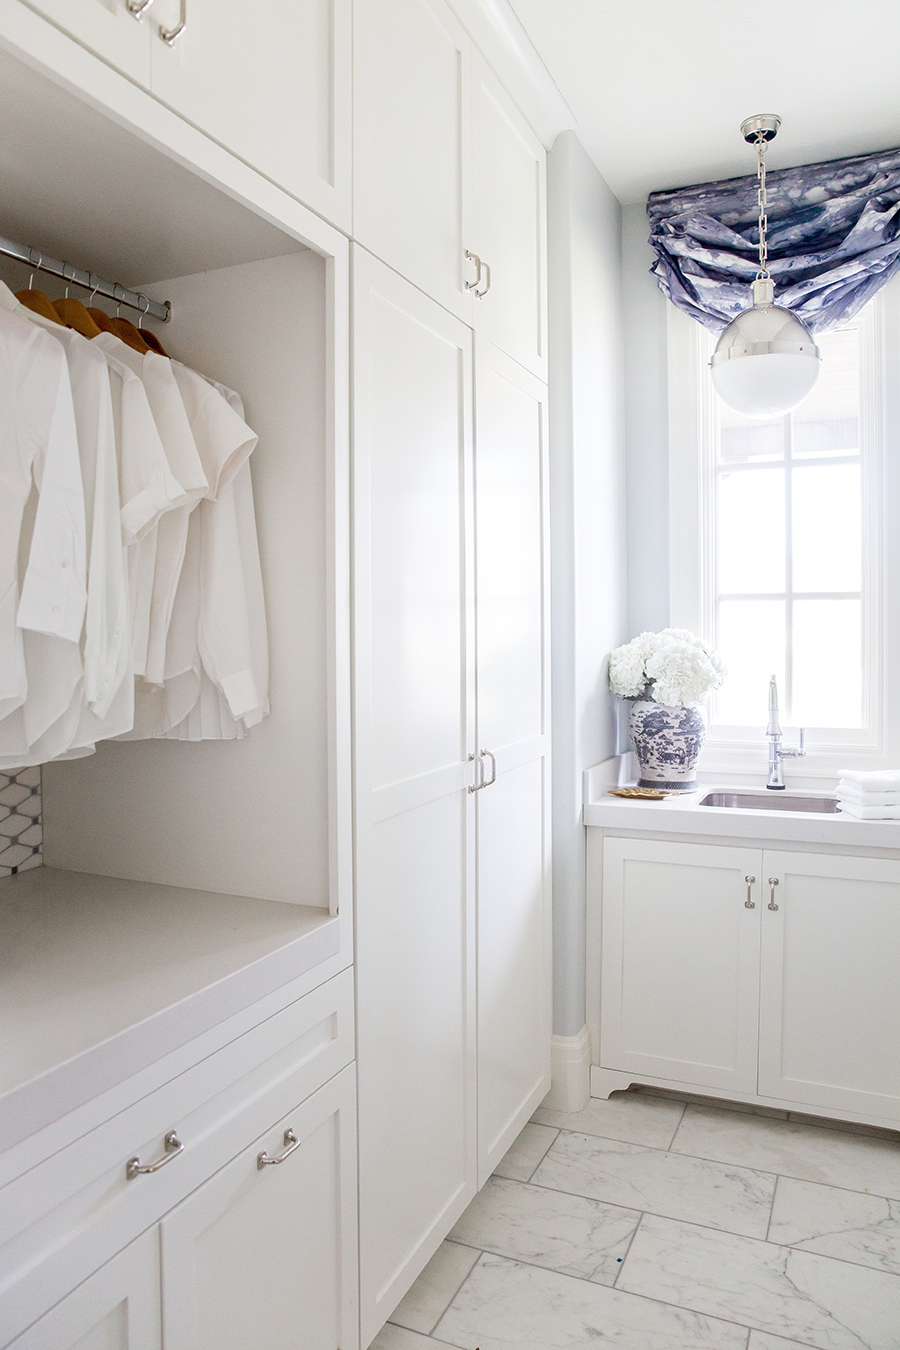 Laundry Room via Emily Jackson / The Ivory Lane